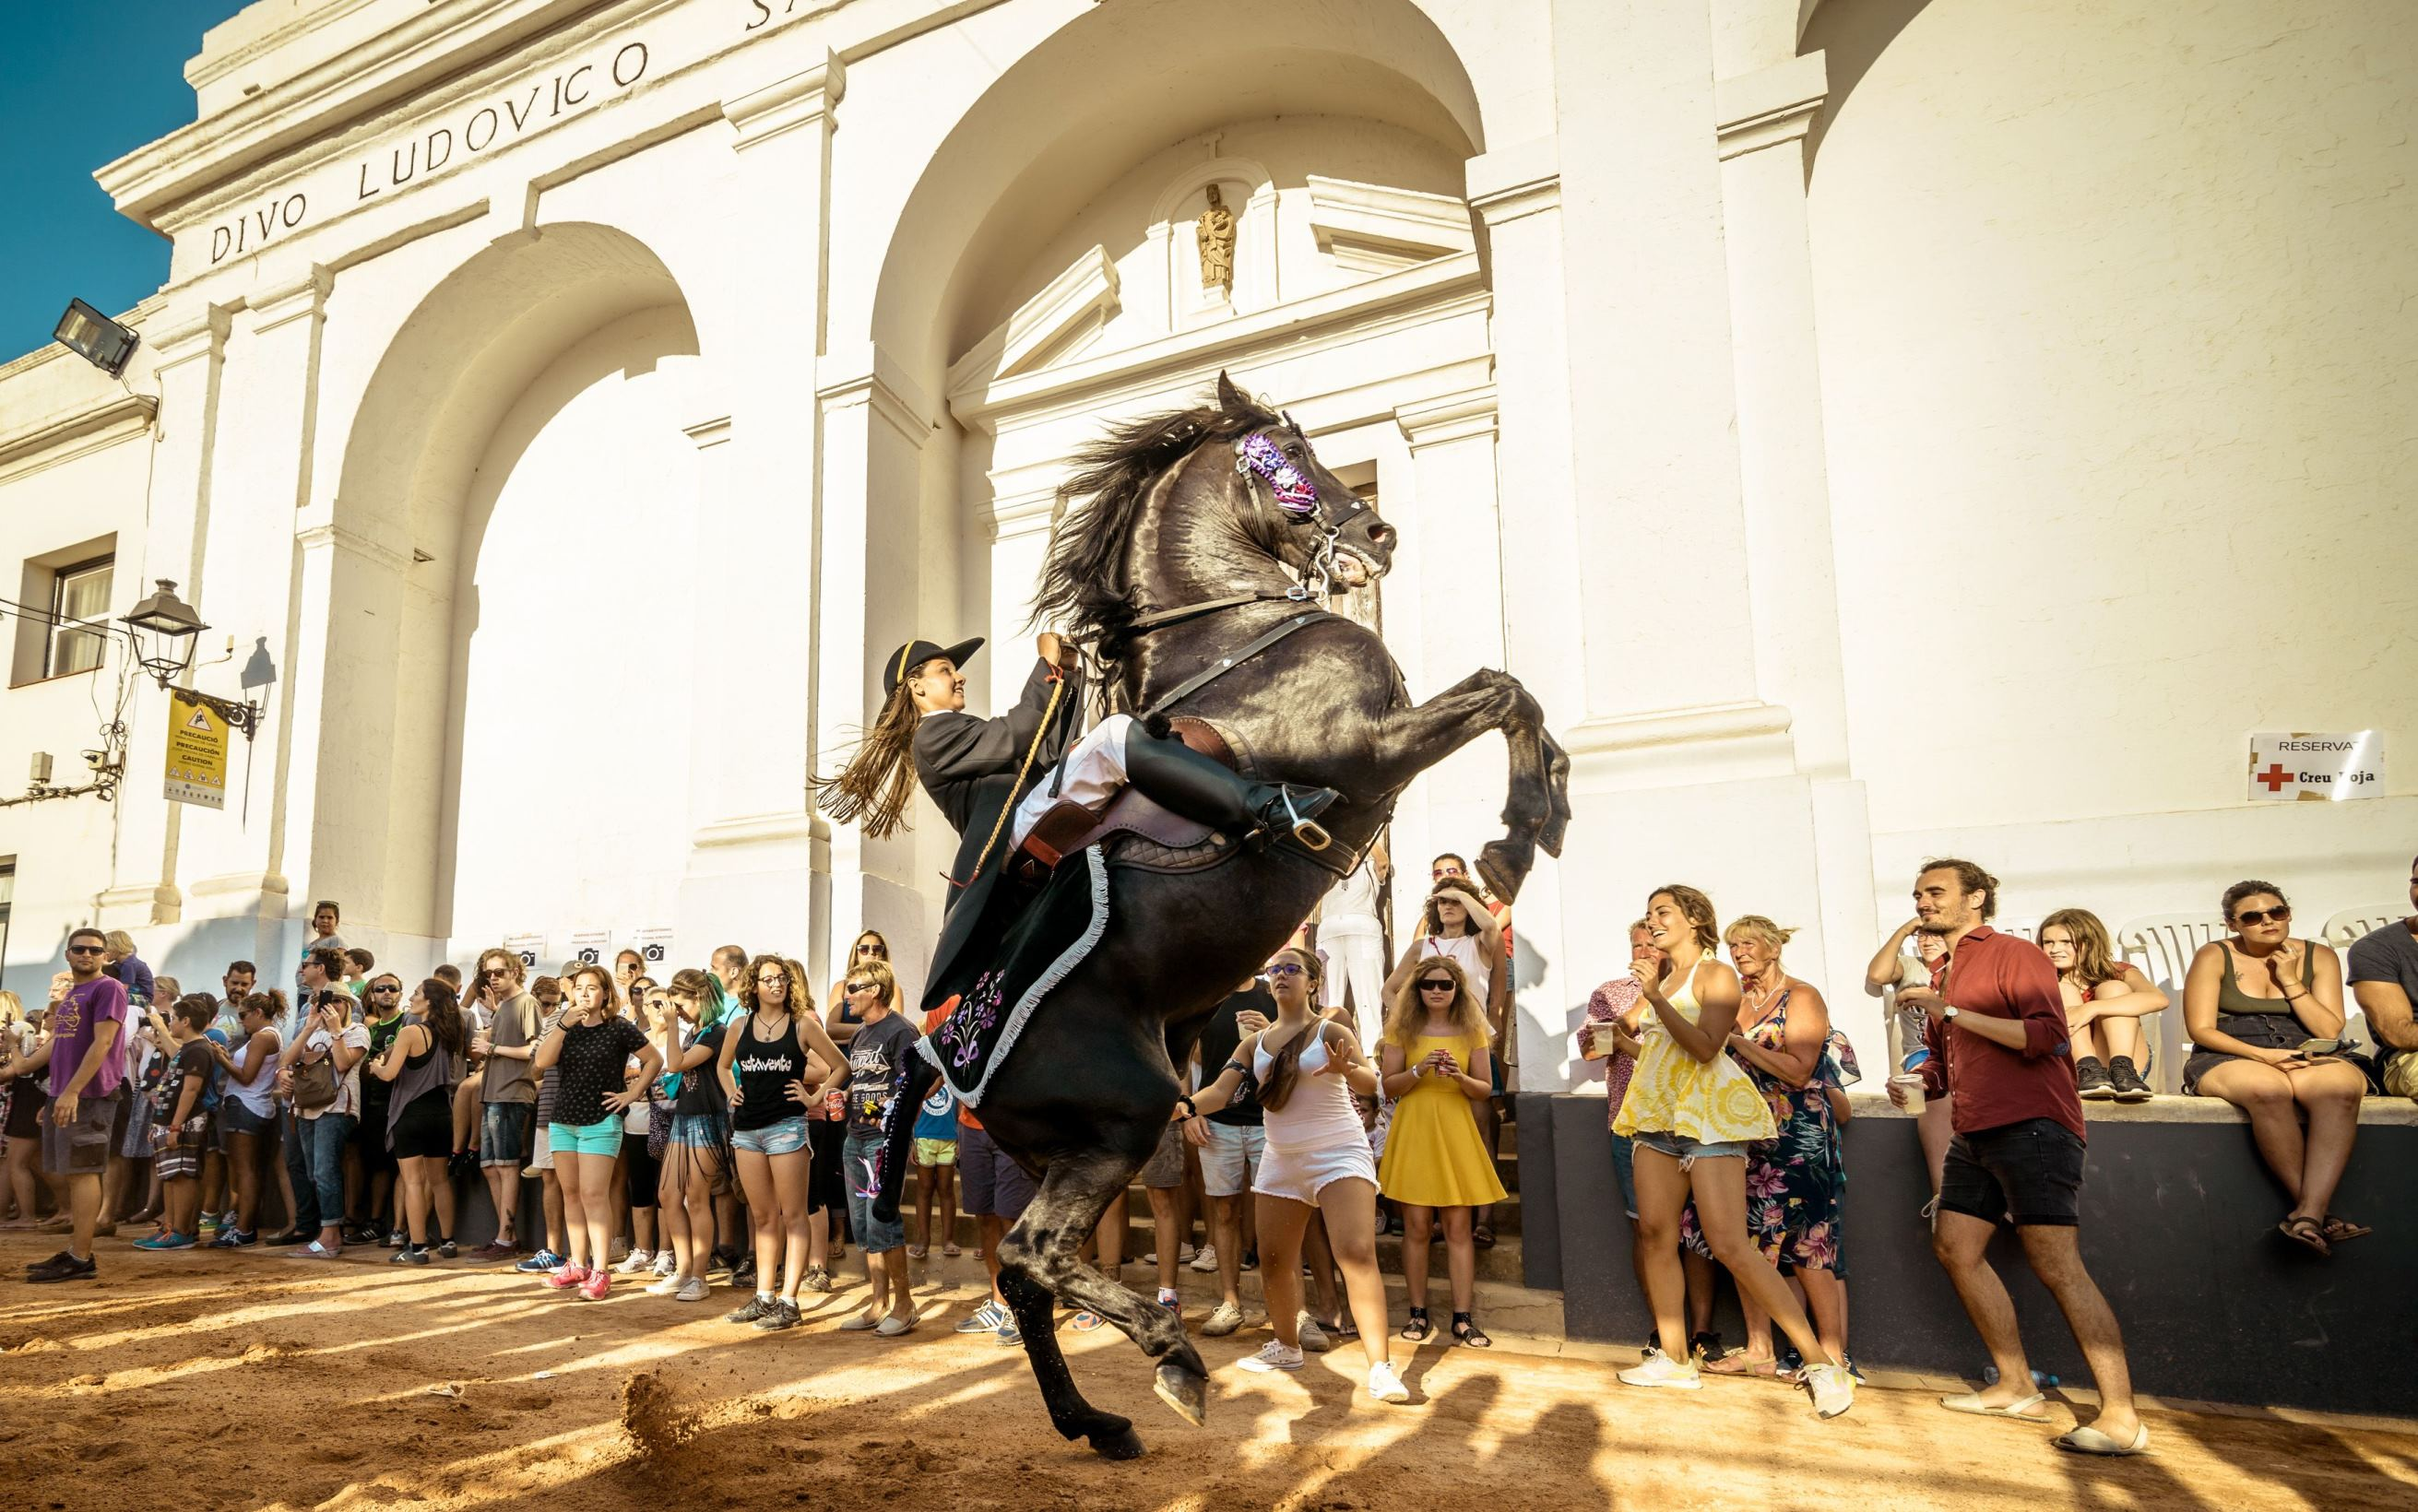 Слайд 10 из 67: St Lluis Patron Saint Festival, Spain - 27 Aug 2016 A 'caixer' (horse rider) rears up on her horse in front of the spectators as he rides through the streets at the beginning of the traditional patron saint fiesta in Sant Lluis